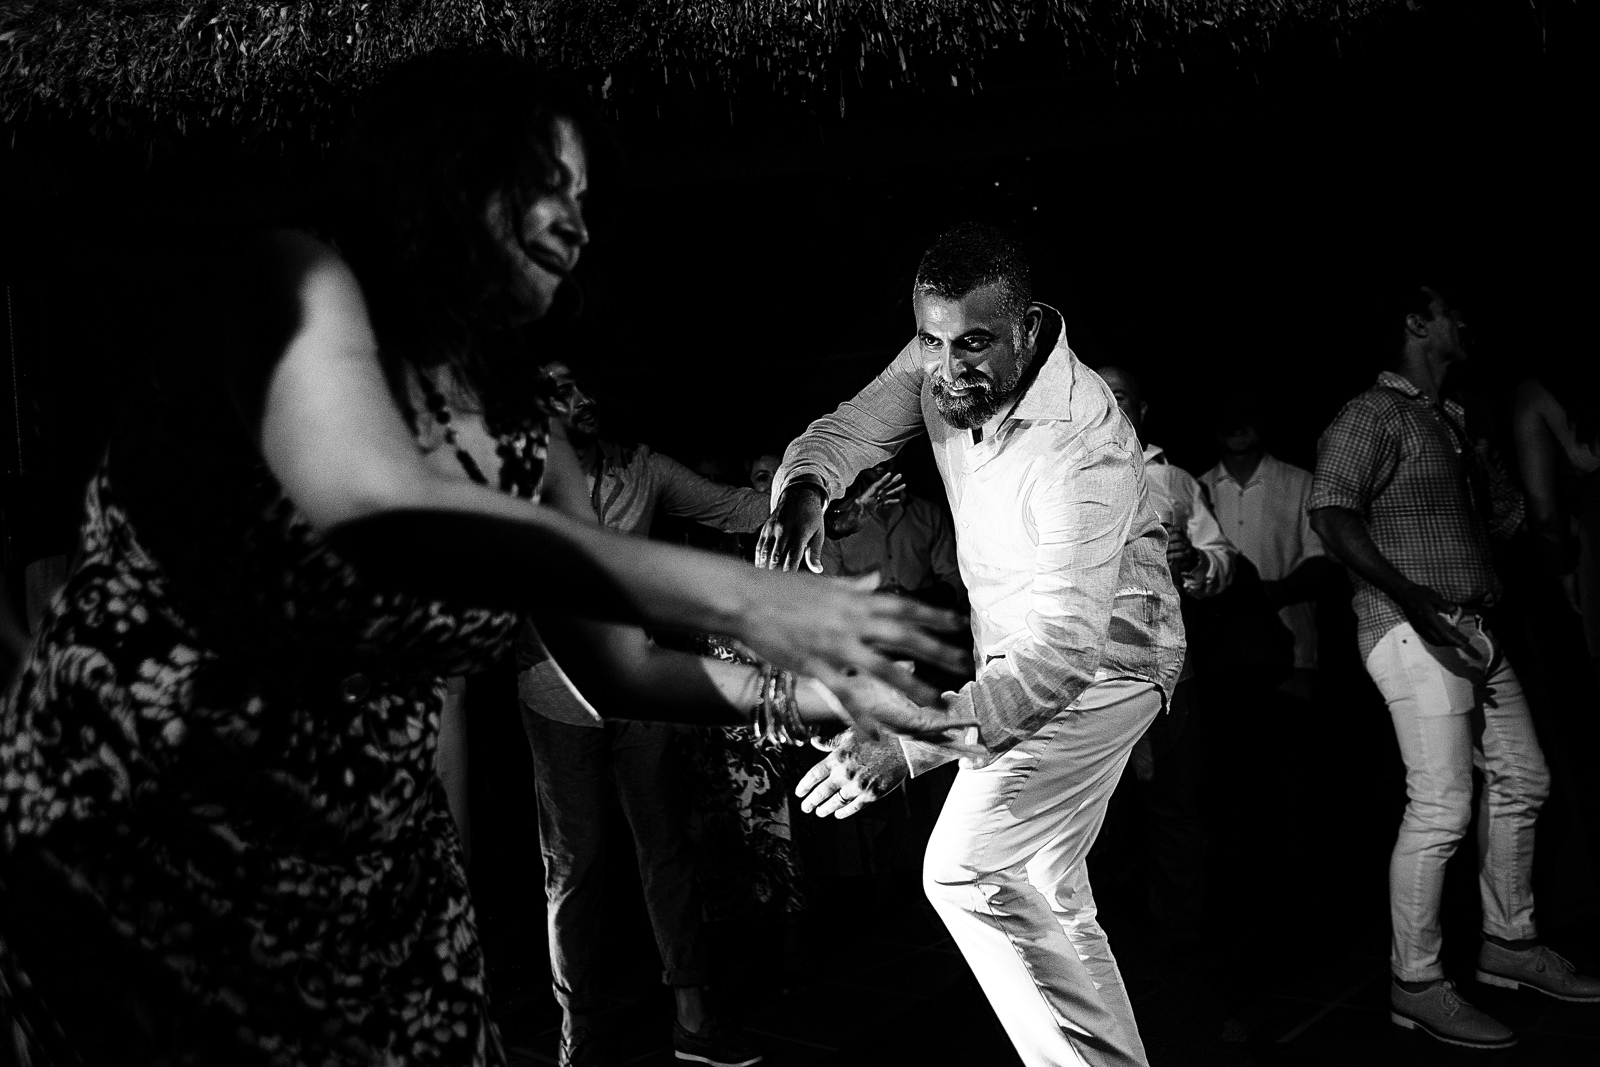 Groom and his sister dancing during the wedding reception